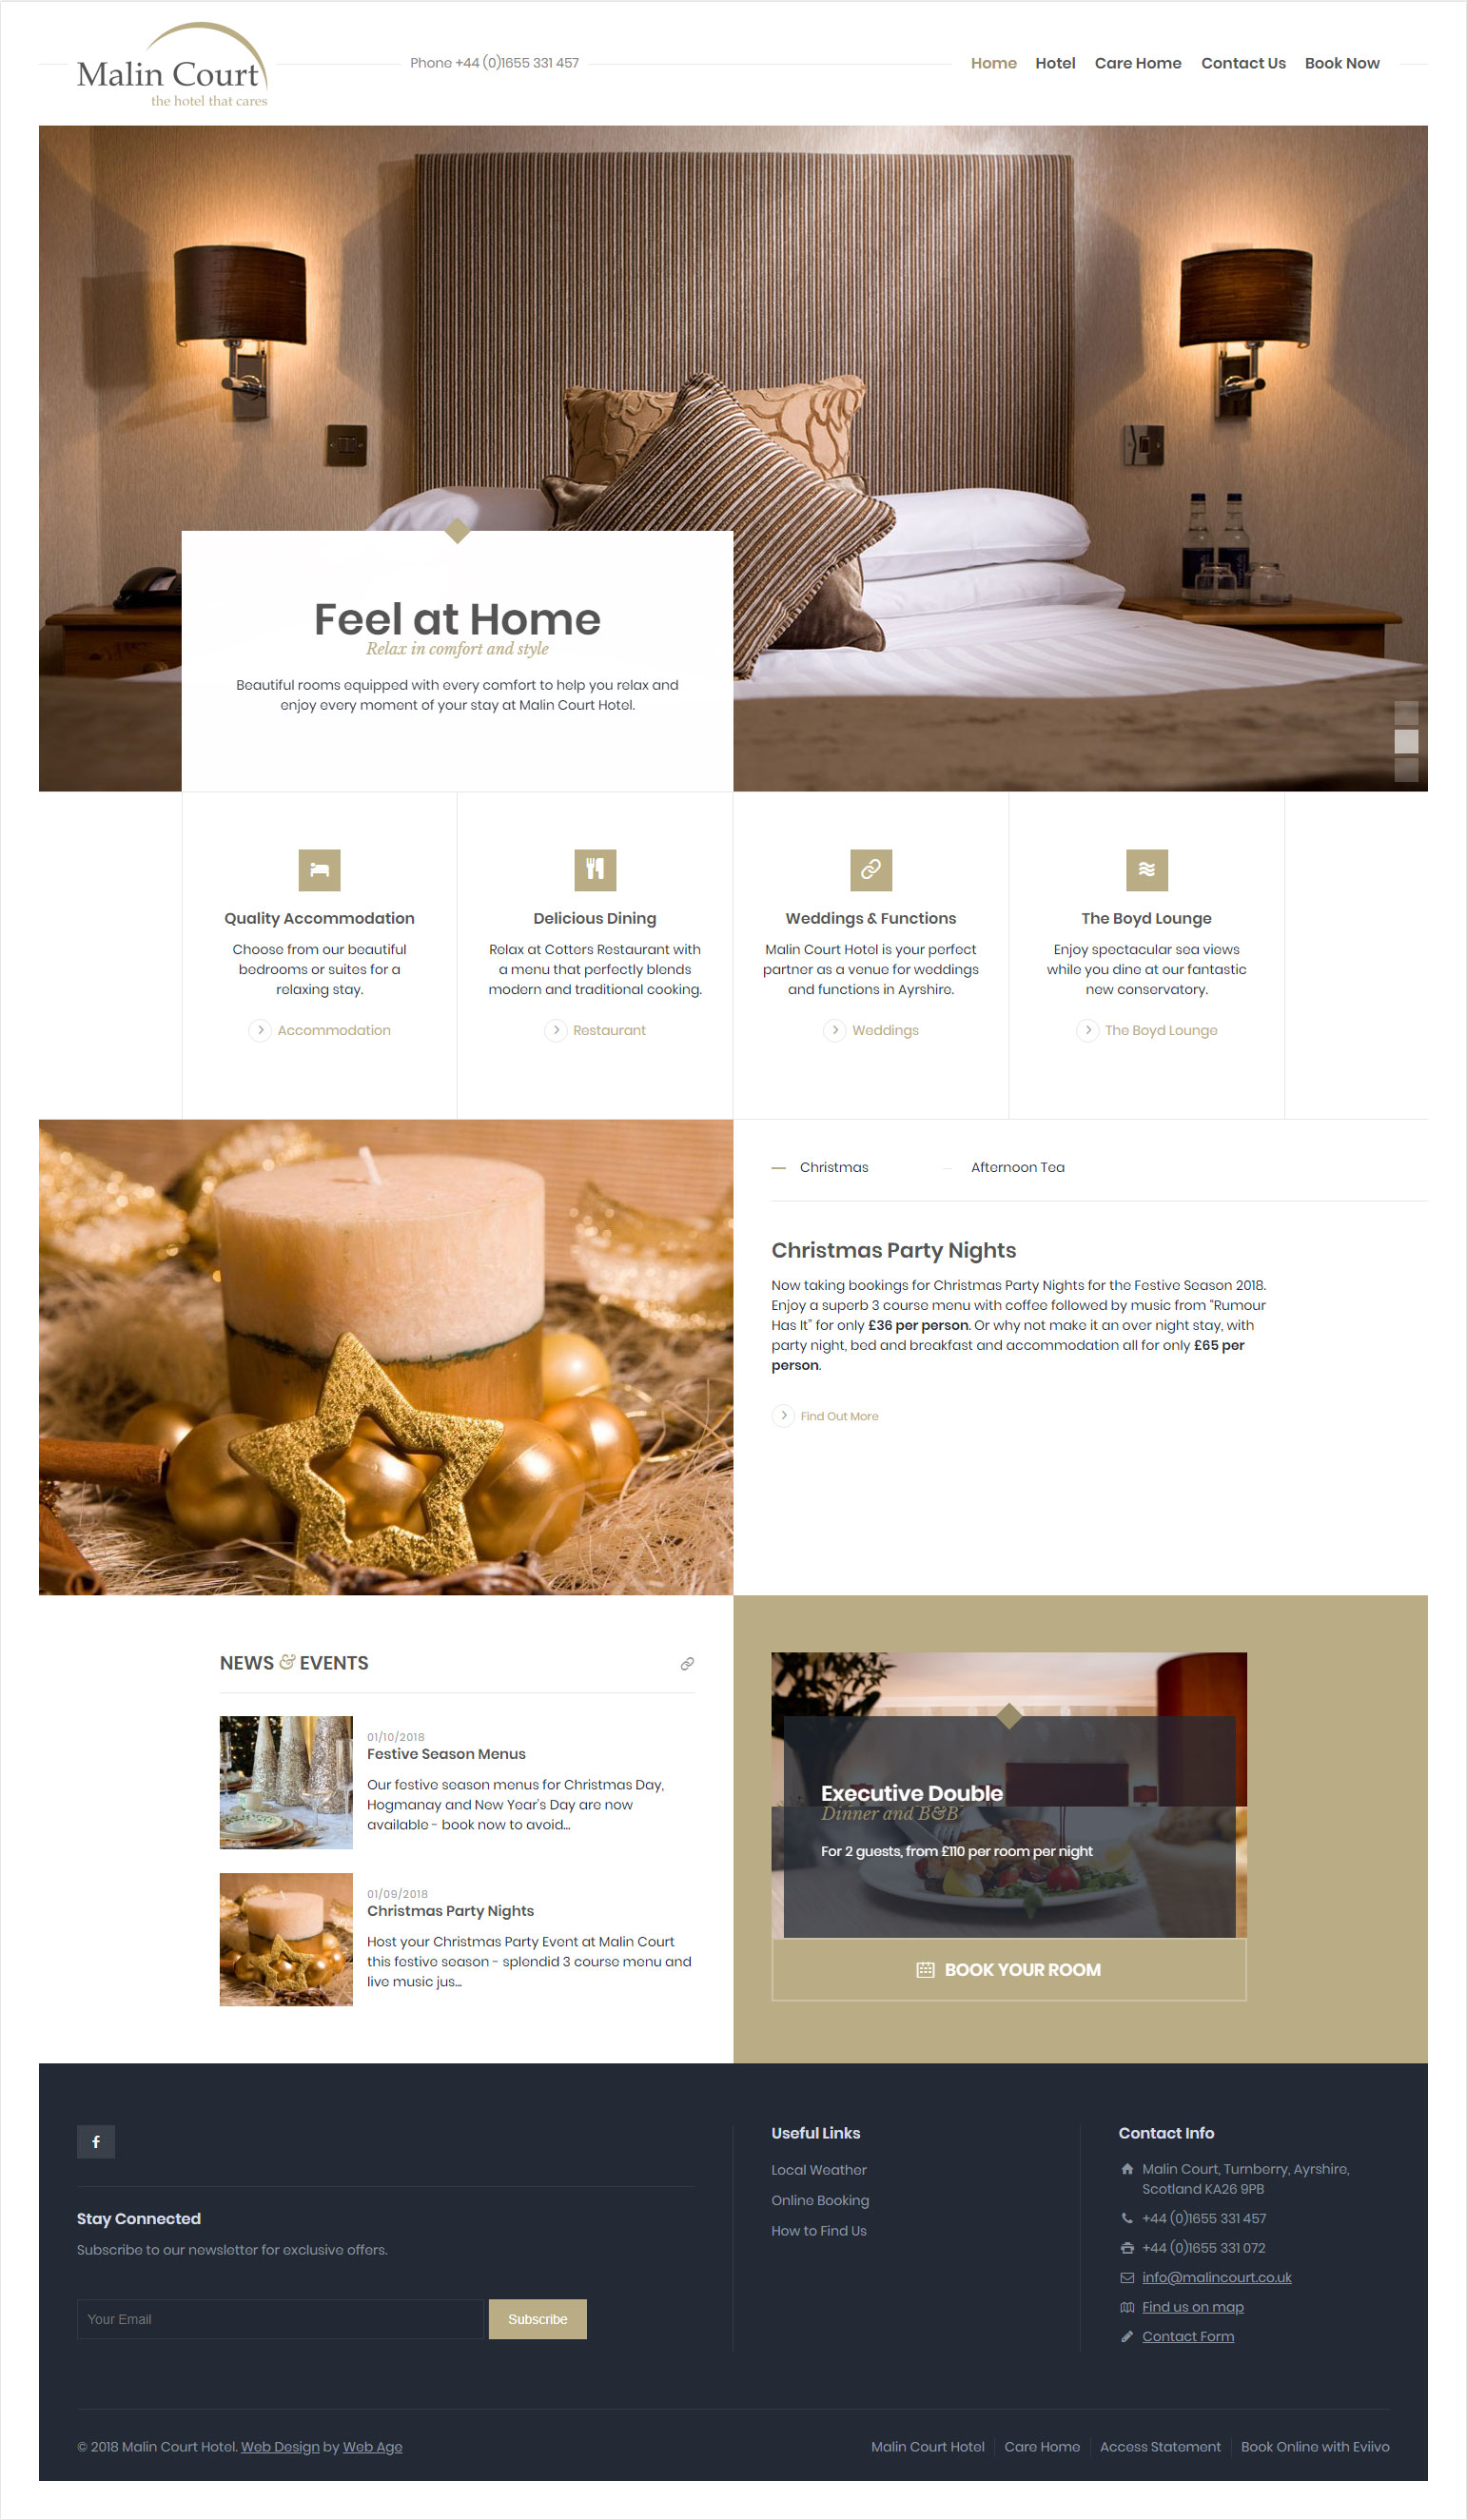 Malin Court Hotel - web design for hotel